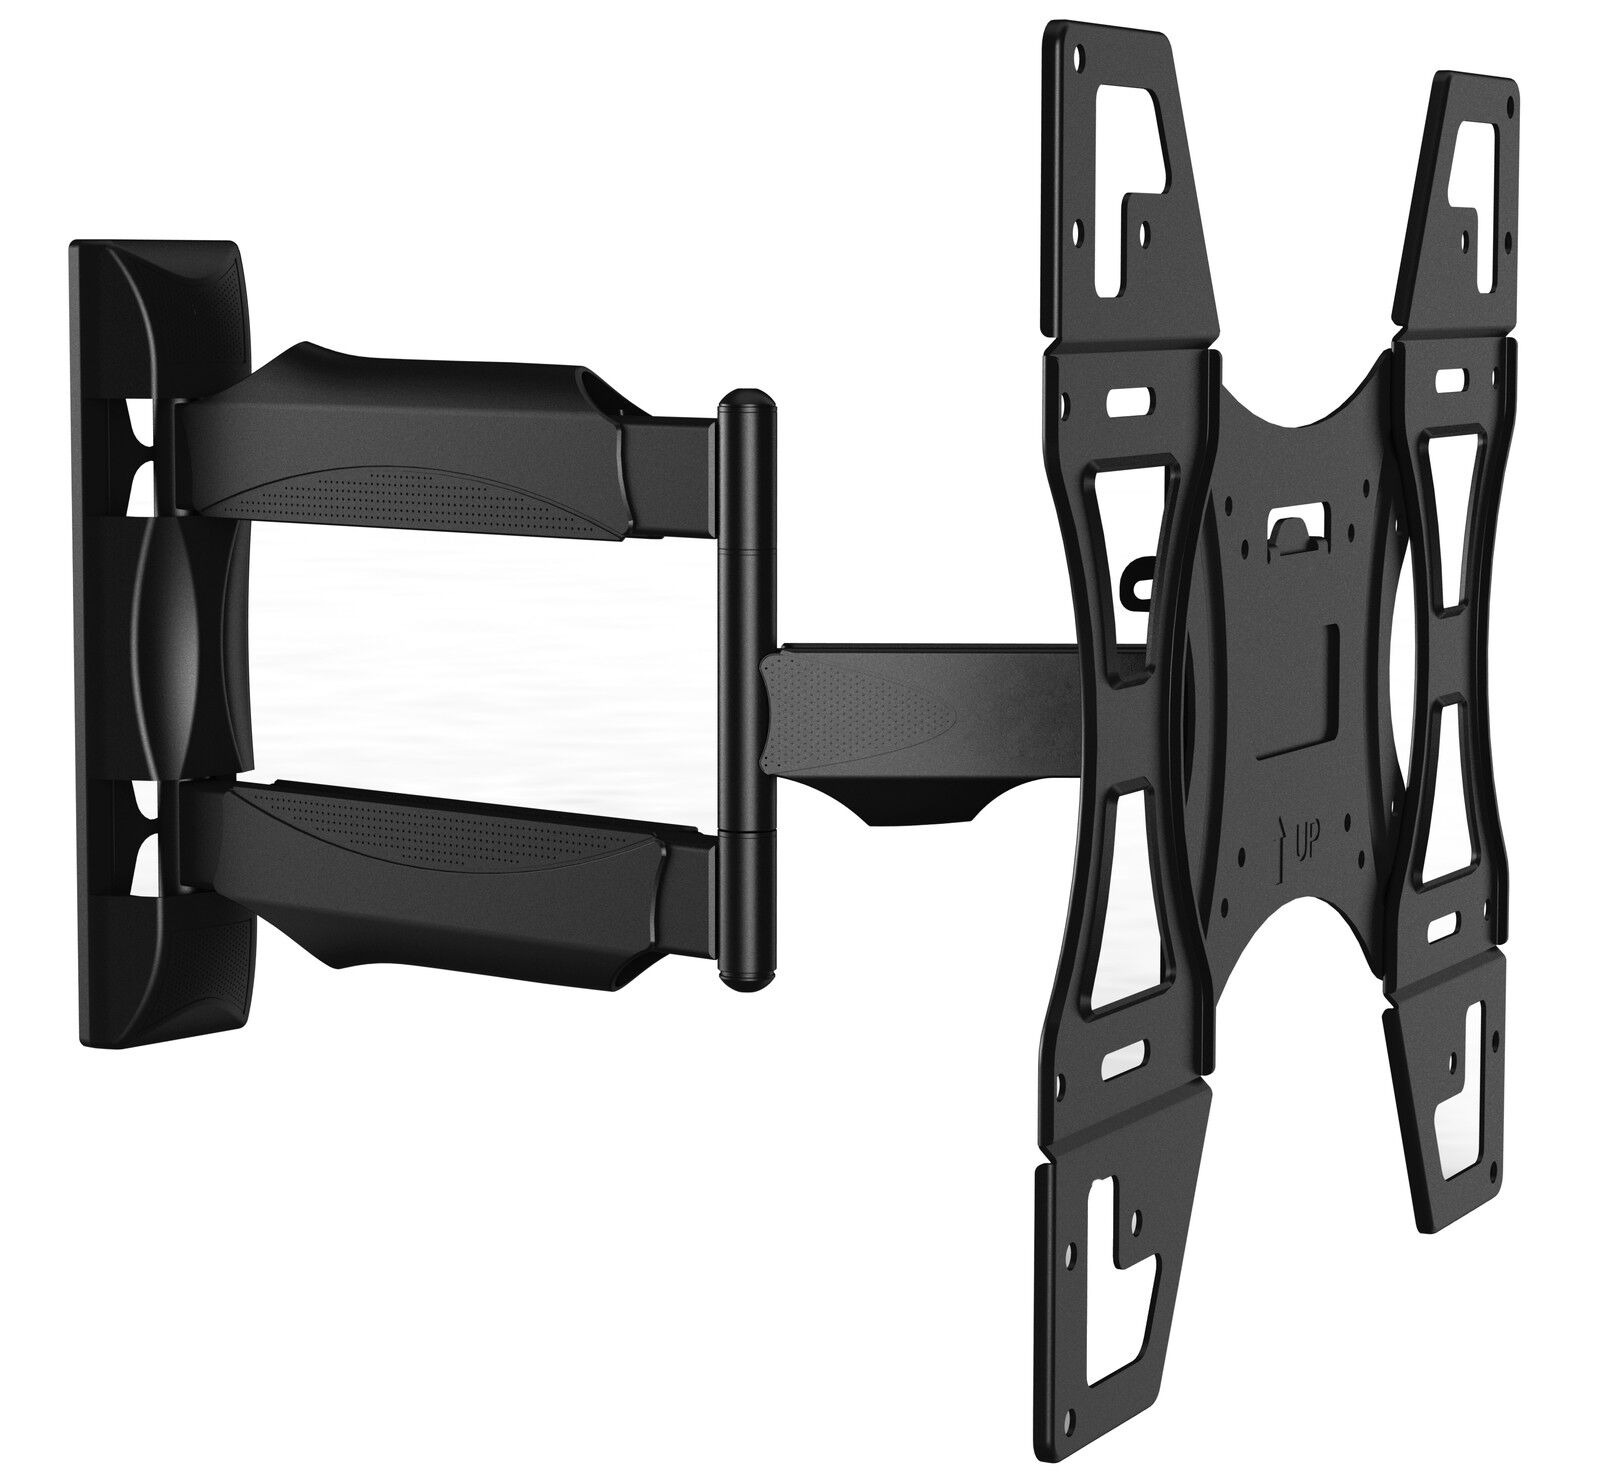 42 inch TV Wall Bracket